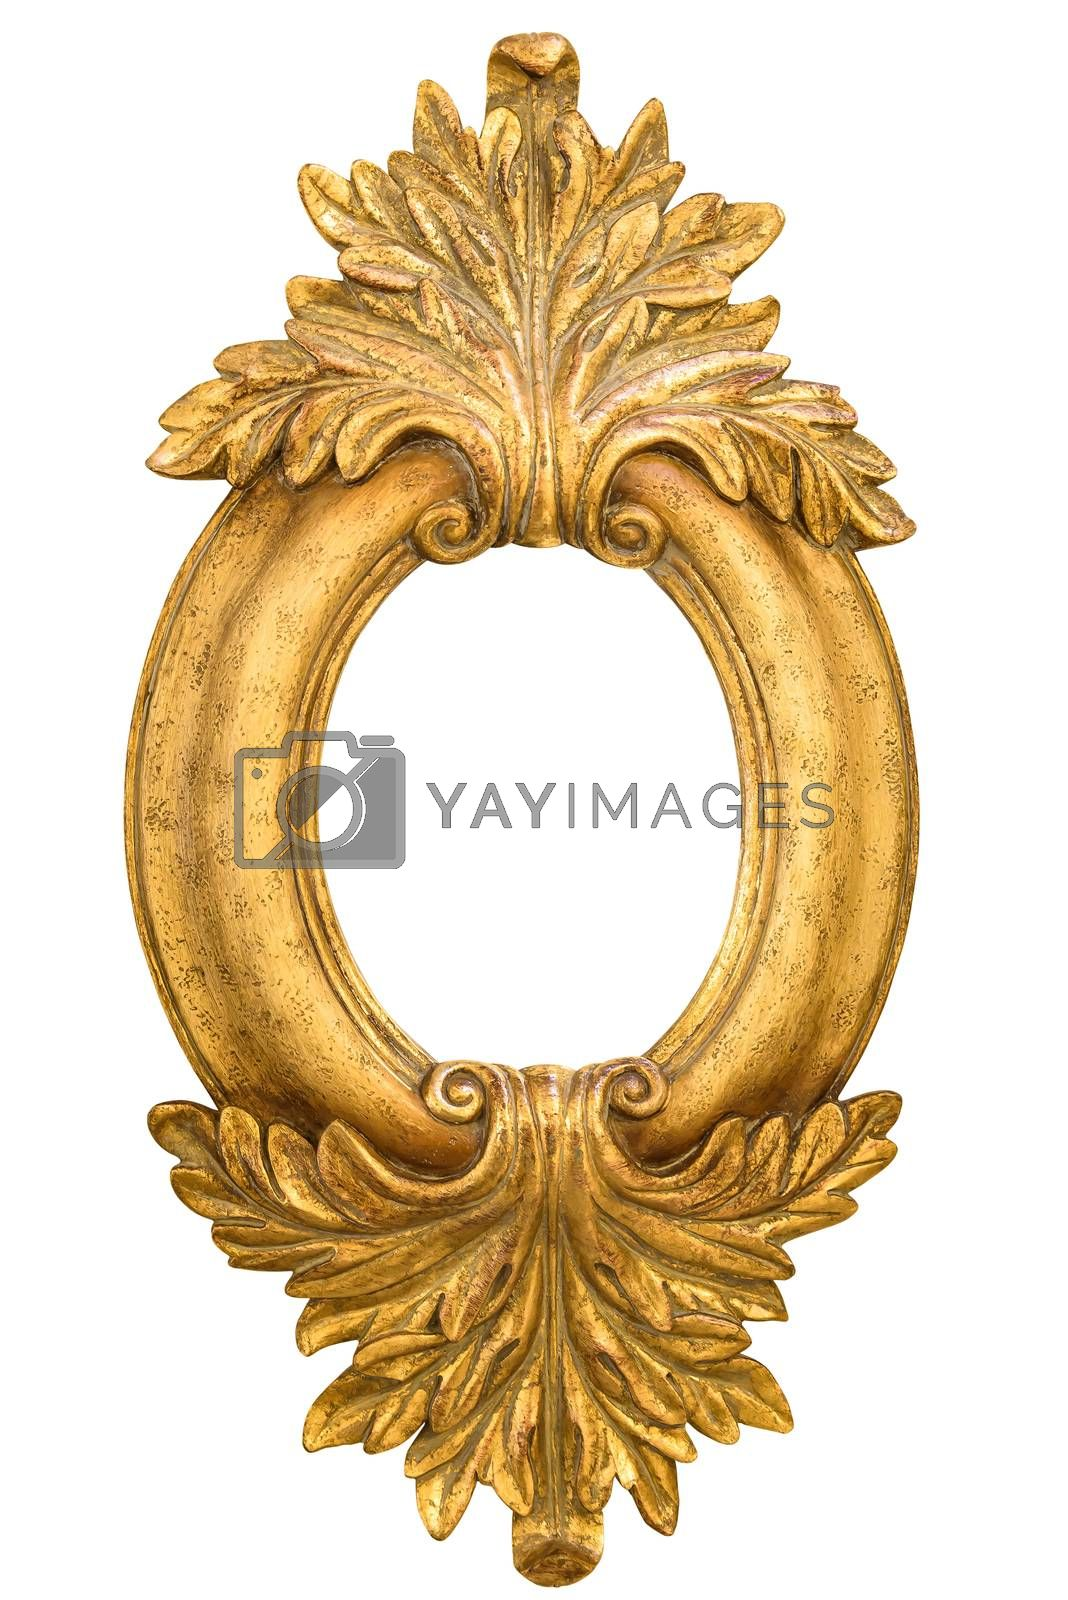 Royalty free image of Oval golden decorative picture frame isolated on white by mkos83